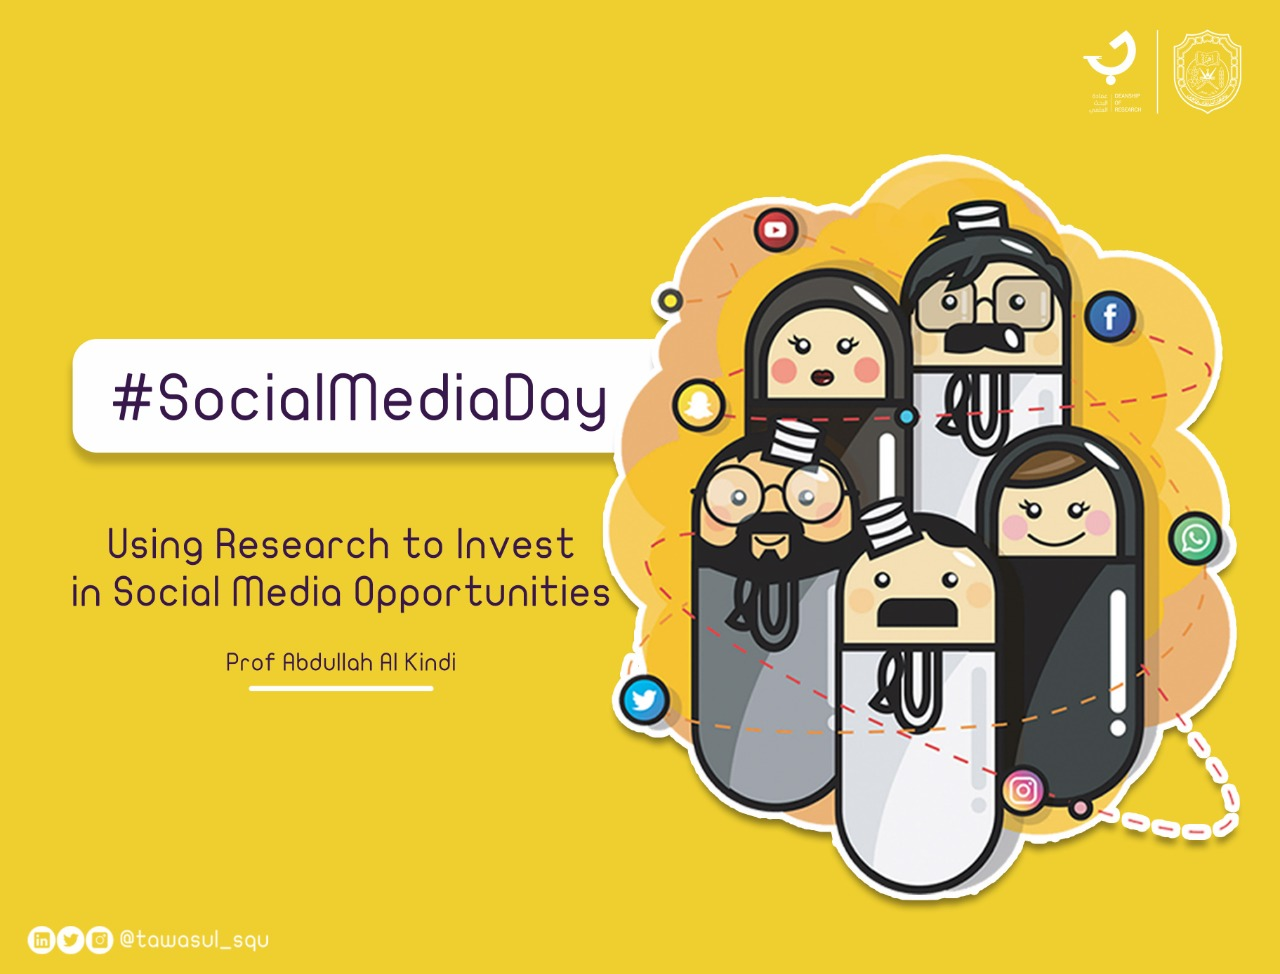 Using Research to Invest in Social Media Opportunities